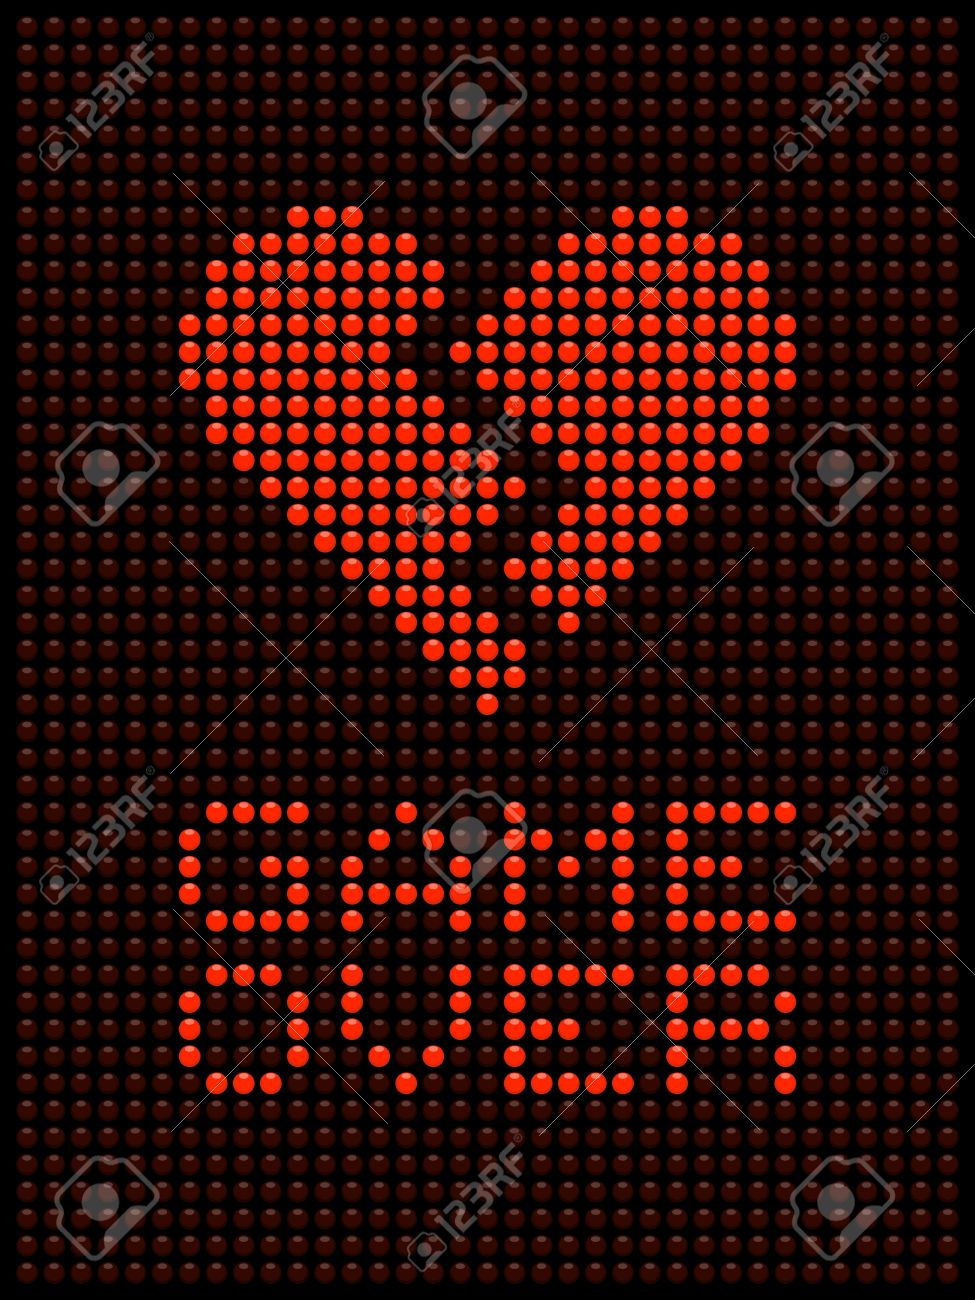 Game Over Message in Red LED Lights Stock Vector - 19026163